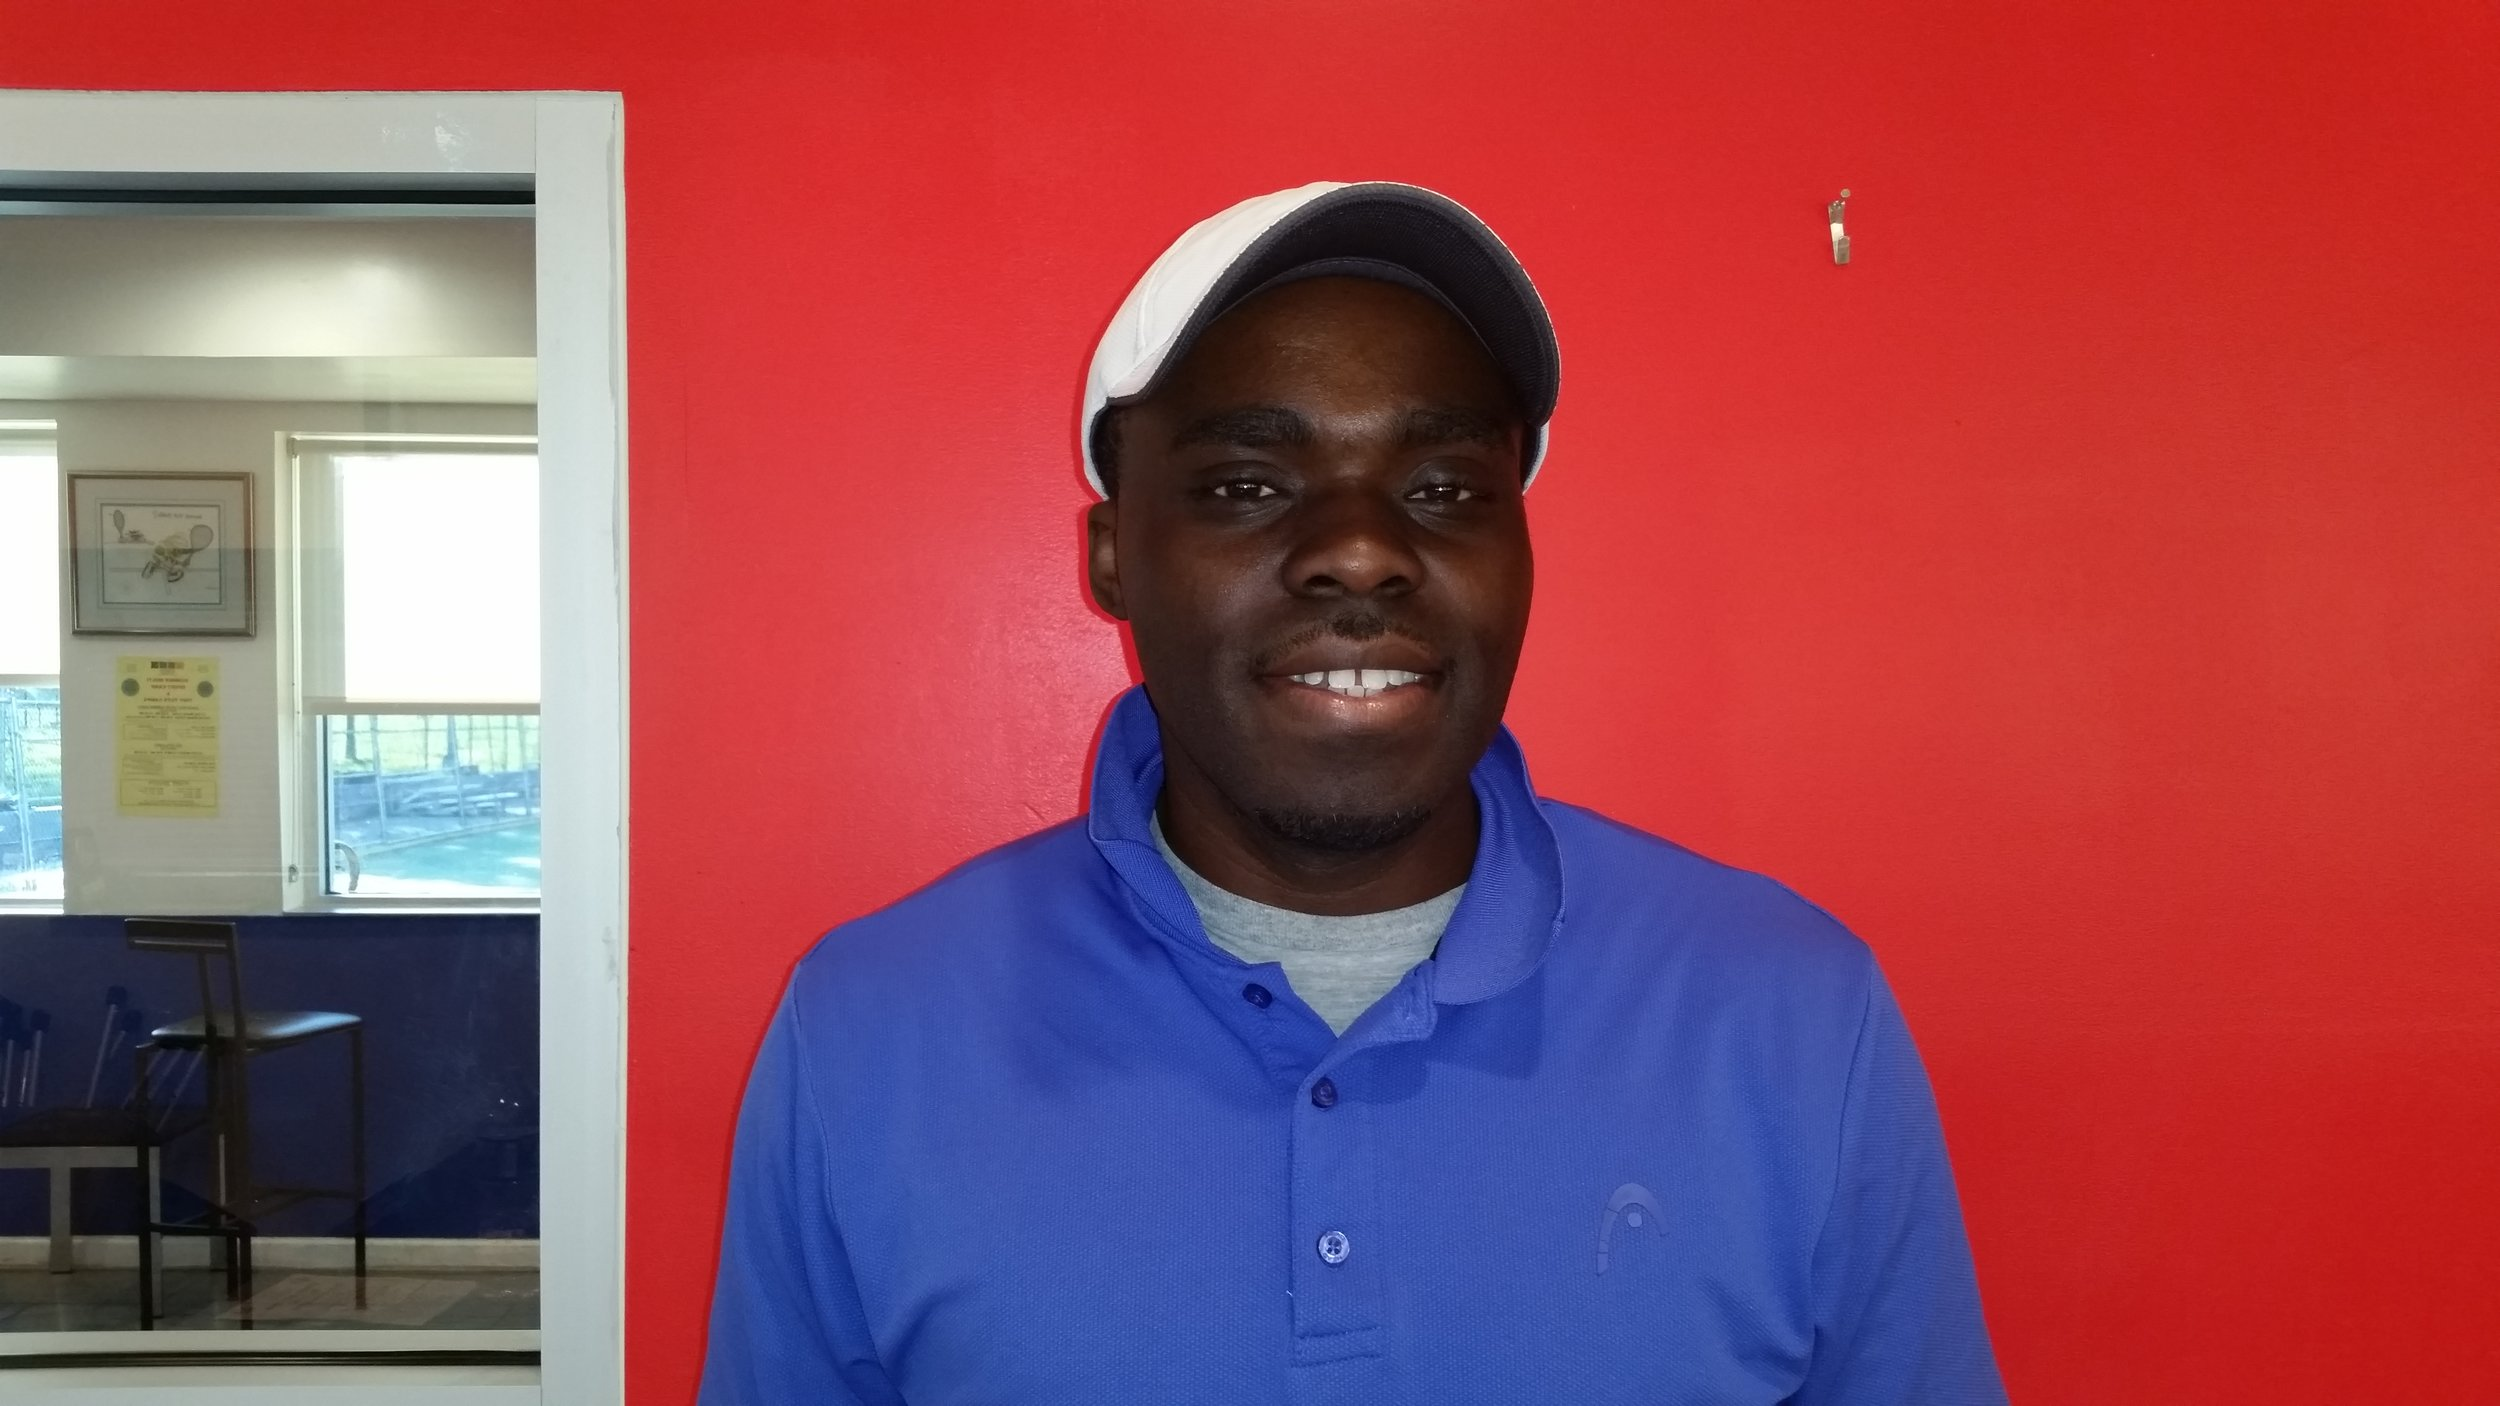 Osas Akinnirany (Akins), is one of our new 2017 part time certified USPTA Professional. Akins graduated from Texas Southern University with a Bachelor's Degree in Engineering Technology. Akins played #3 singles on the Men's tennis team. Along with his studies he also on the side learn how to fly and earned his Private Pilot's License. Akins has been teaching for 10 years. He has a great smile and loves to work with children of all ages as well as adults. We welcome Akins to our APTC Family!